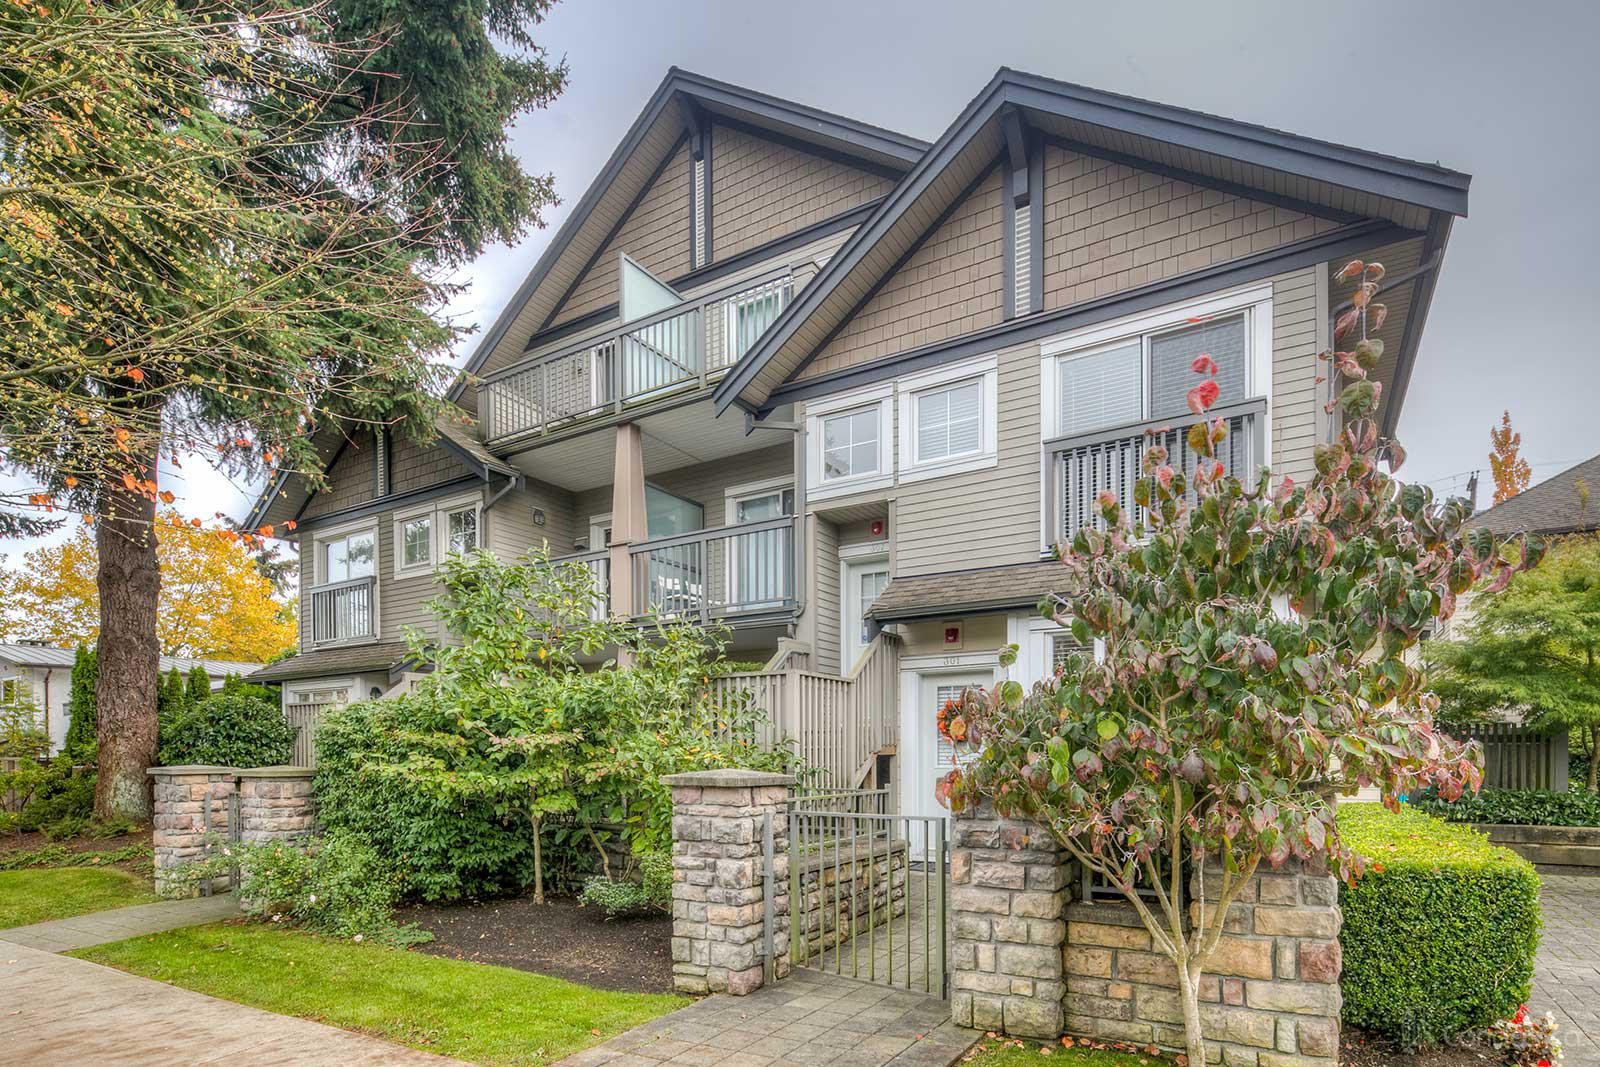 Monticello at 4458 Albert St, Burnaby 0